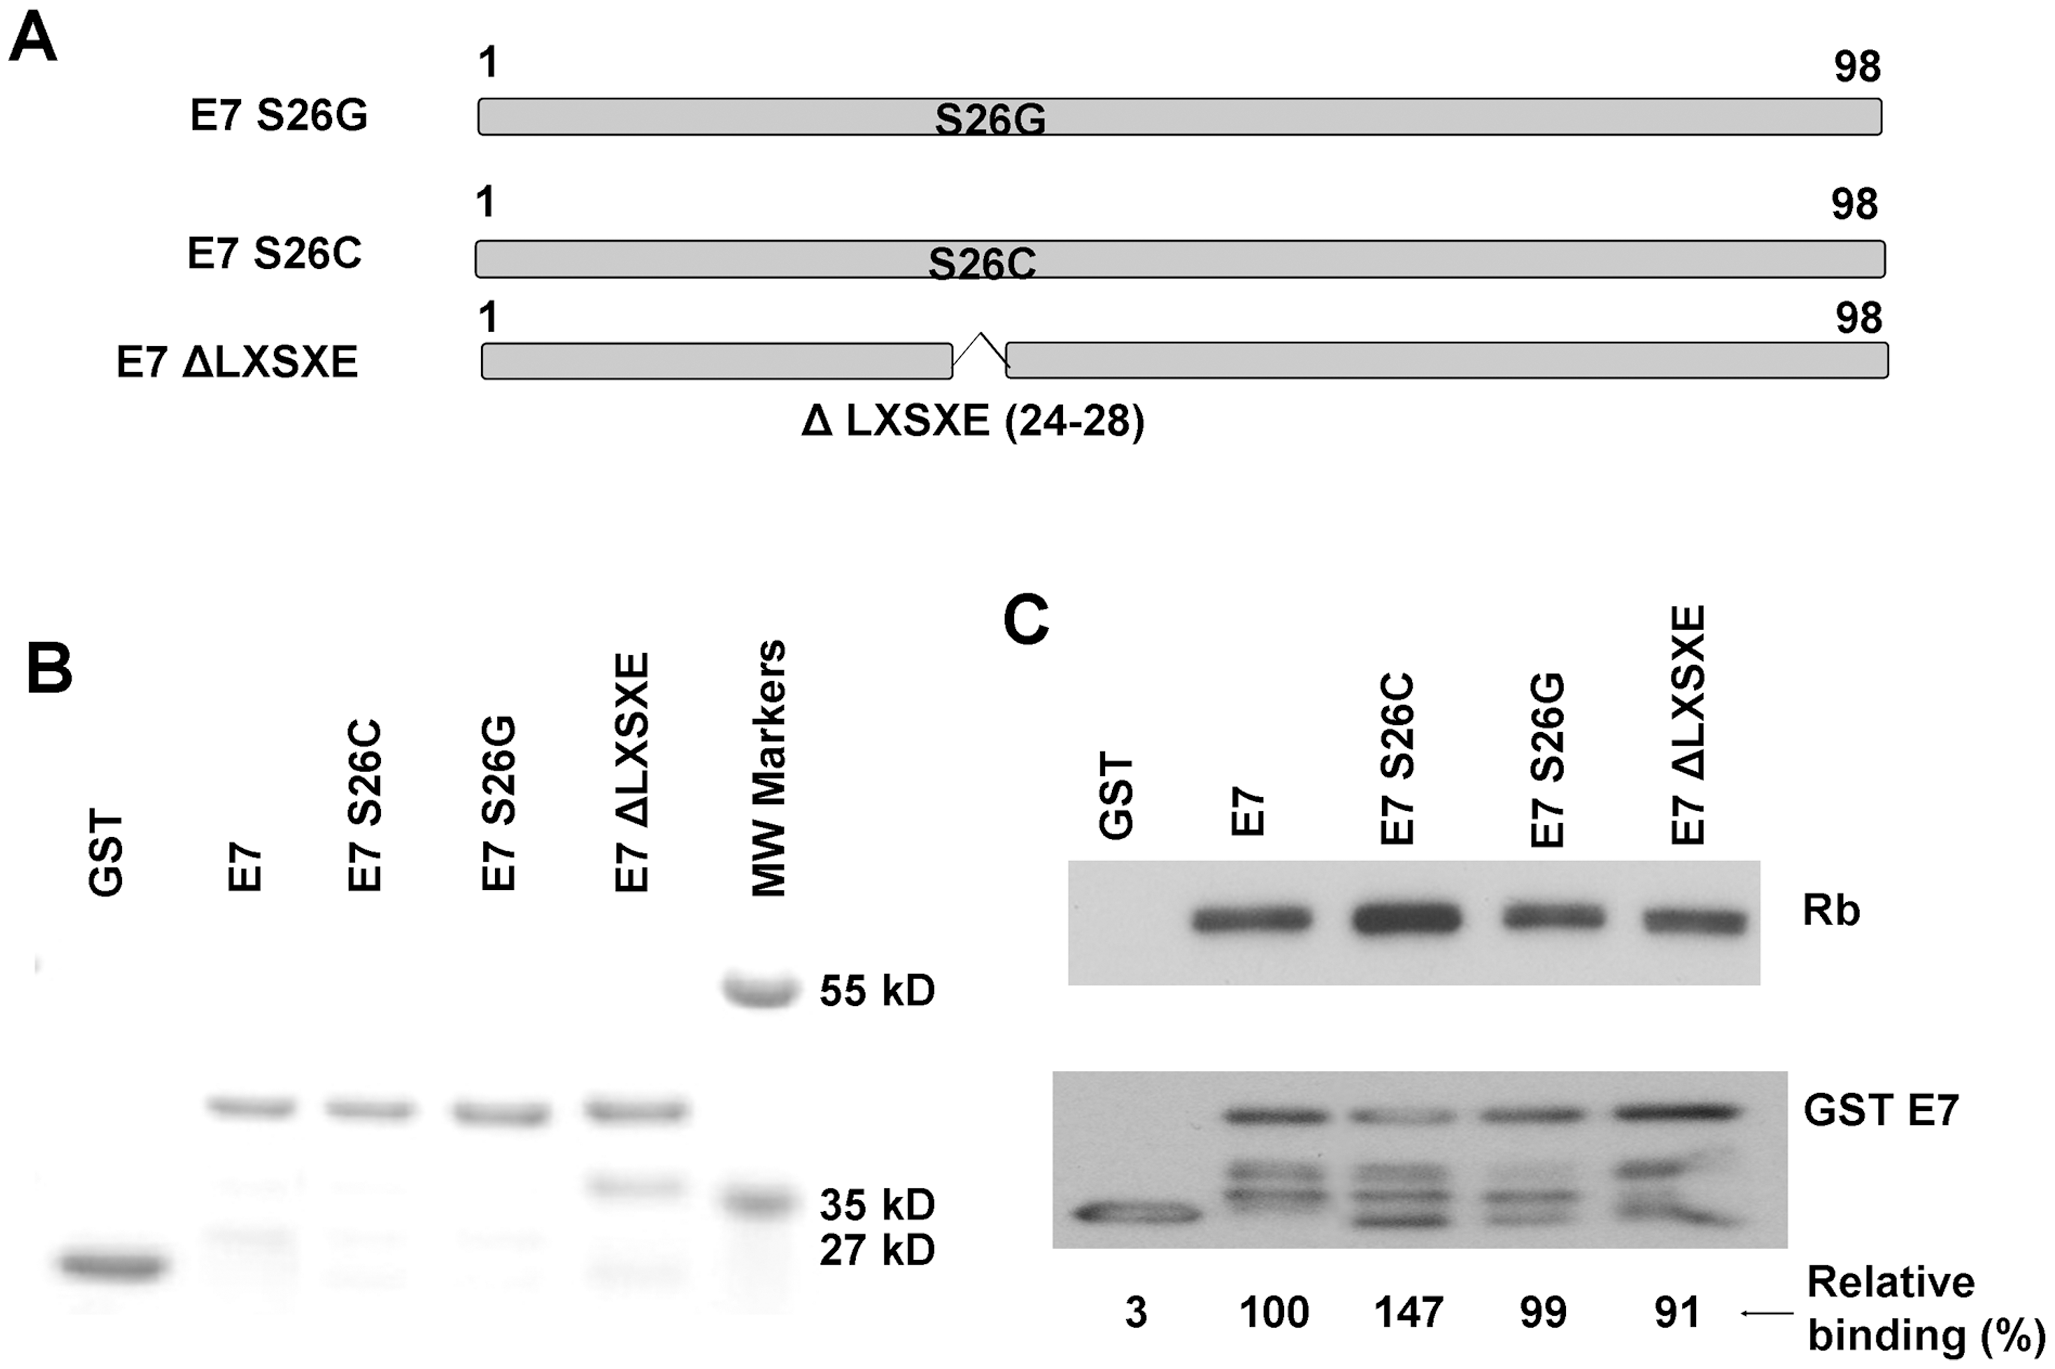 The canine E7 LXSXE motif is not required for pRb binding.